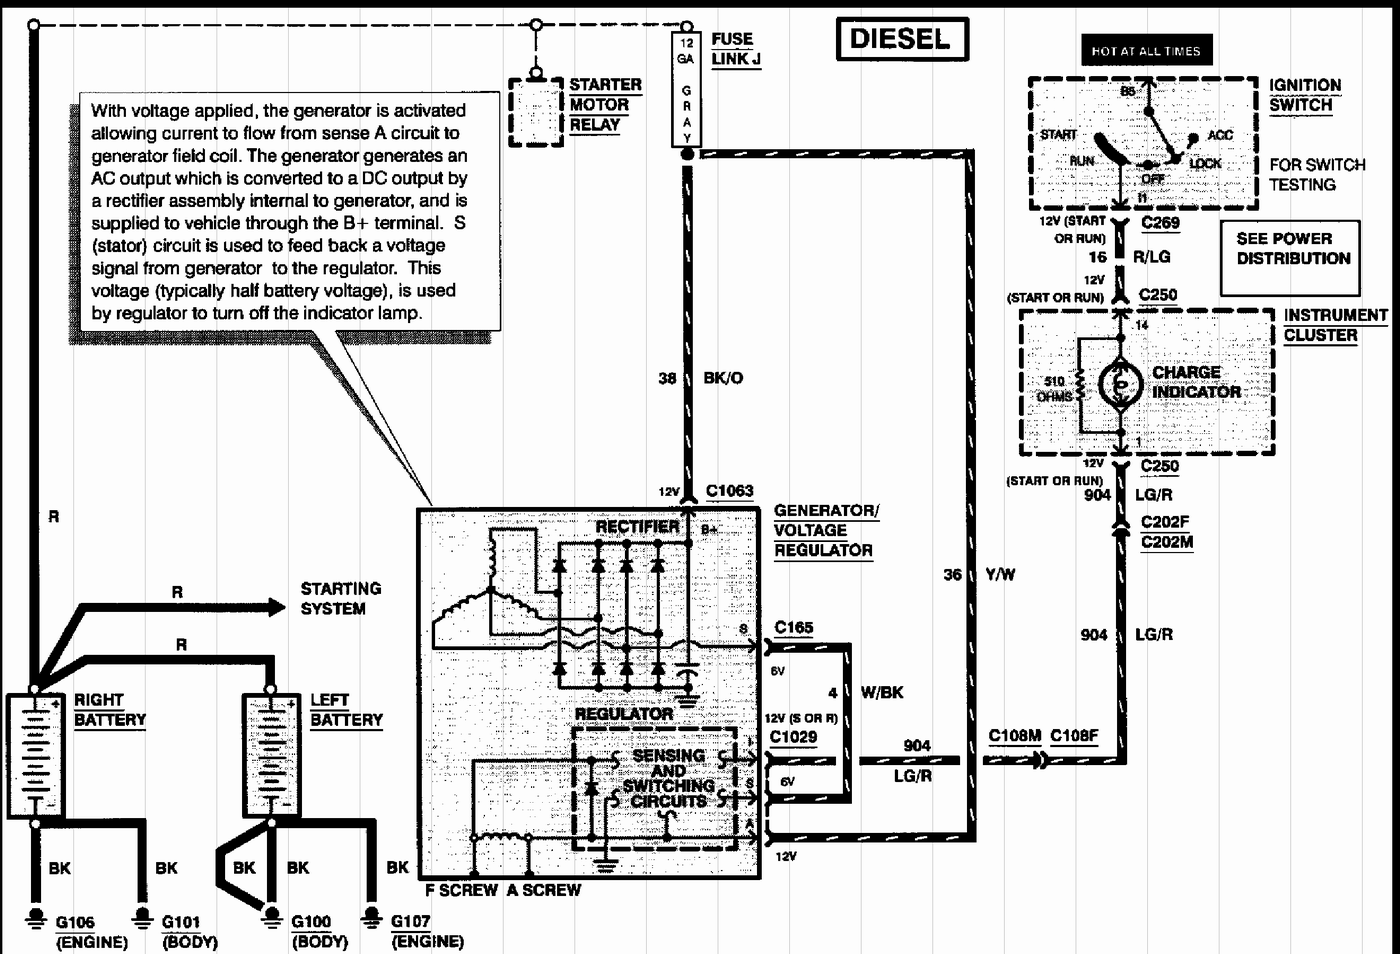 medium resolution of wiring diagram for a 1997 ford f 250 wiring diagram list wiring diagram for 1997 ford f150 wiring diagram for 1997 ford f250